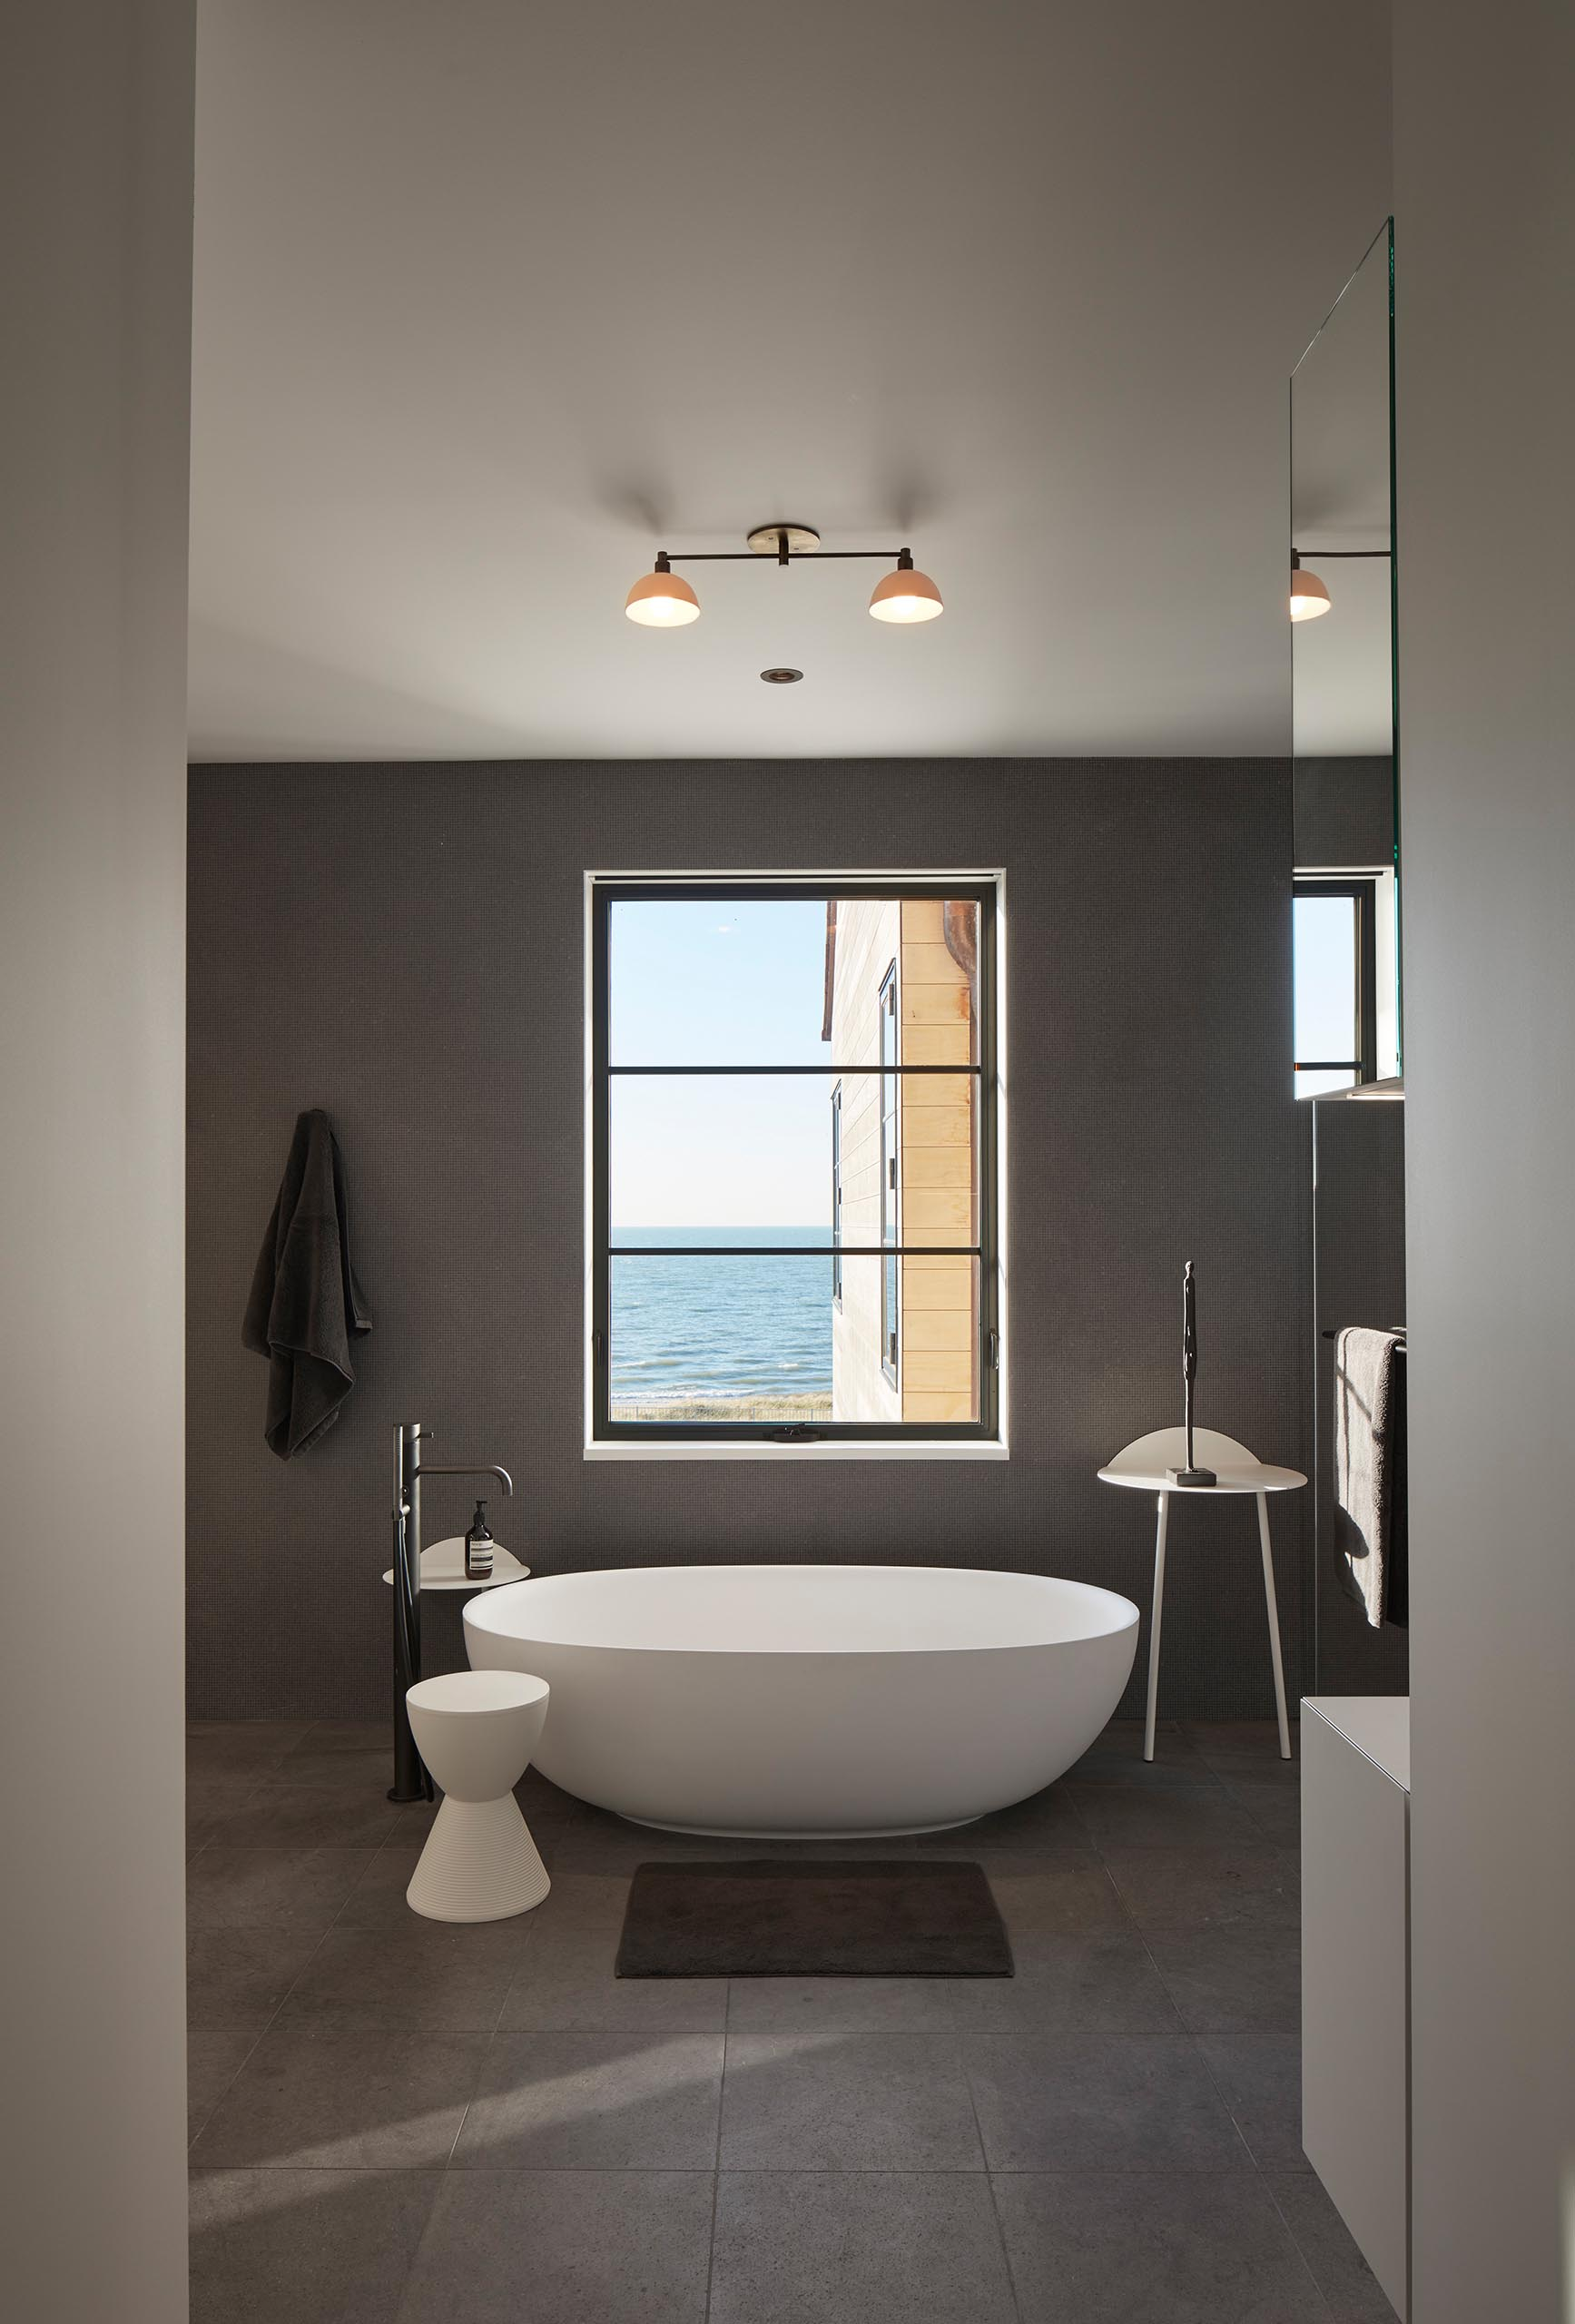 In this modern master bathroom, a freestanding bathtub has been positioned below the window, while dark gray walls complement the gray tiles on the floor.